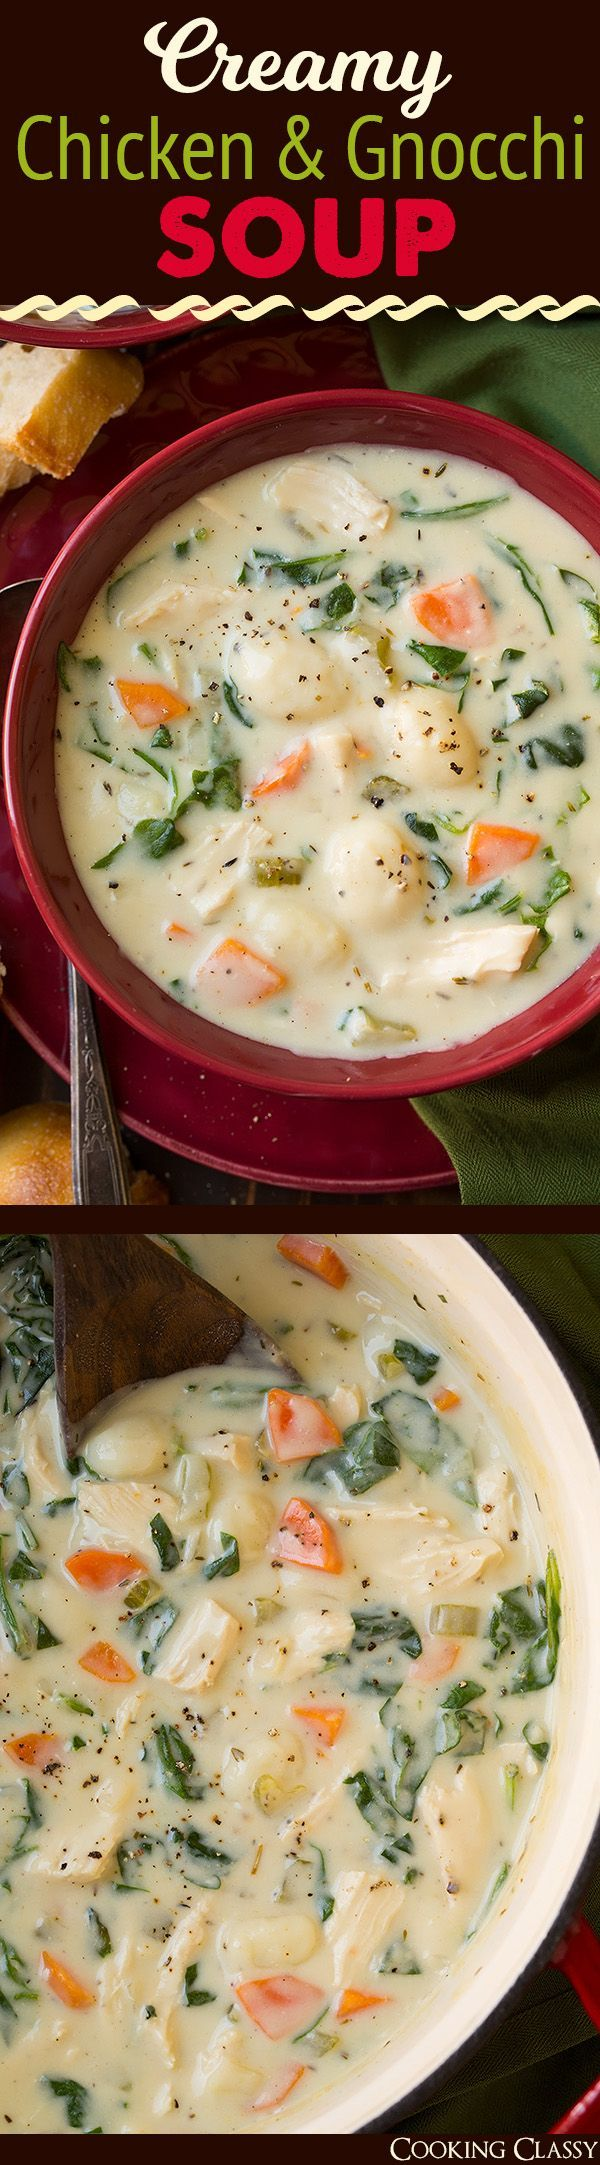 Best 20 Olive Garden Soups Ideas On Pinterest Cooking Gnocchi Olive Garden Pasta And Olive